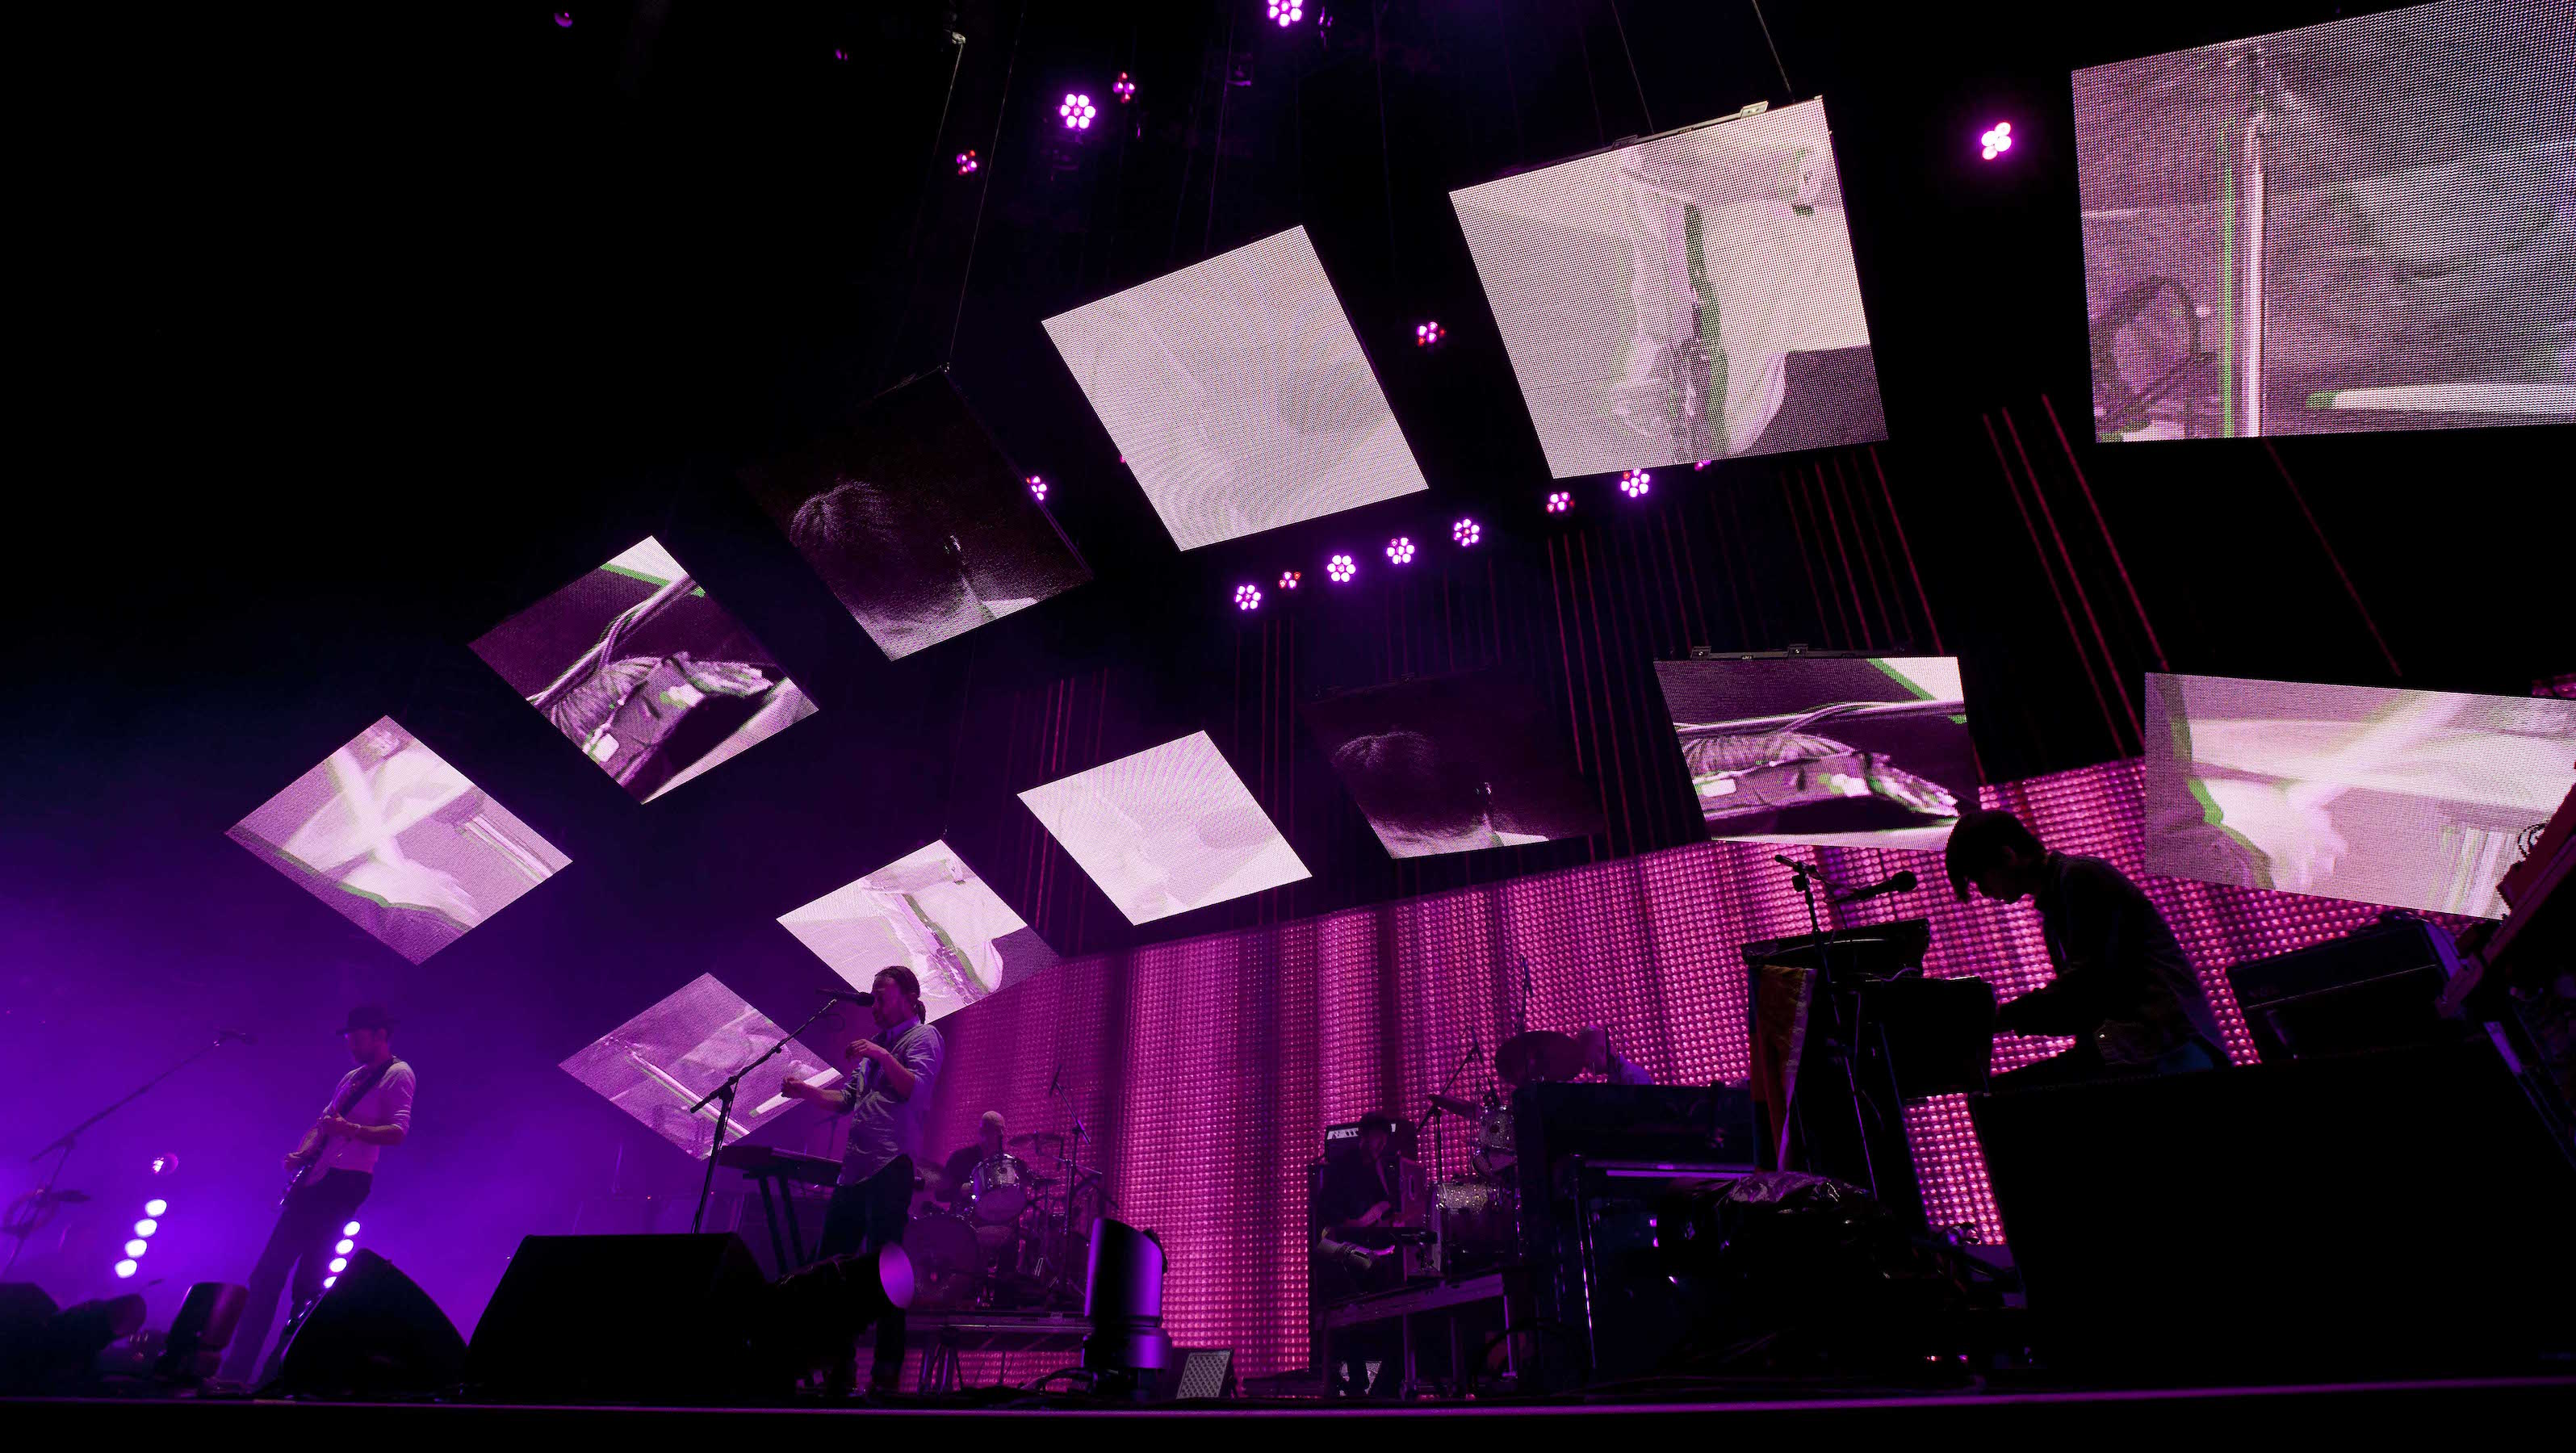 Radiohead performs during the Bonnaroo Music and Arts Festival in Manchester, Tenn., Friday, June 8, 2012. (AP Photo/Dave Martin)